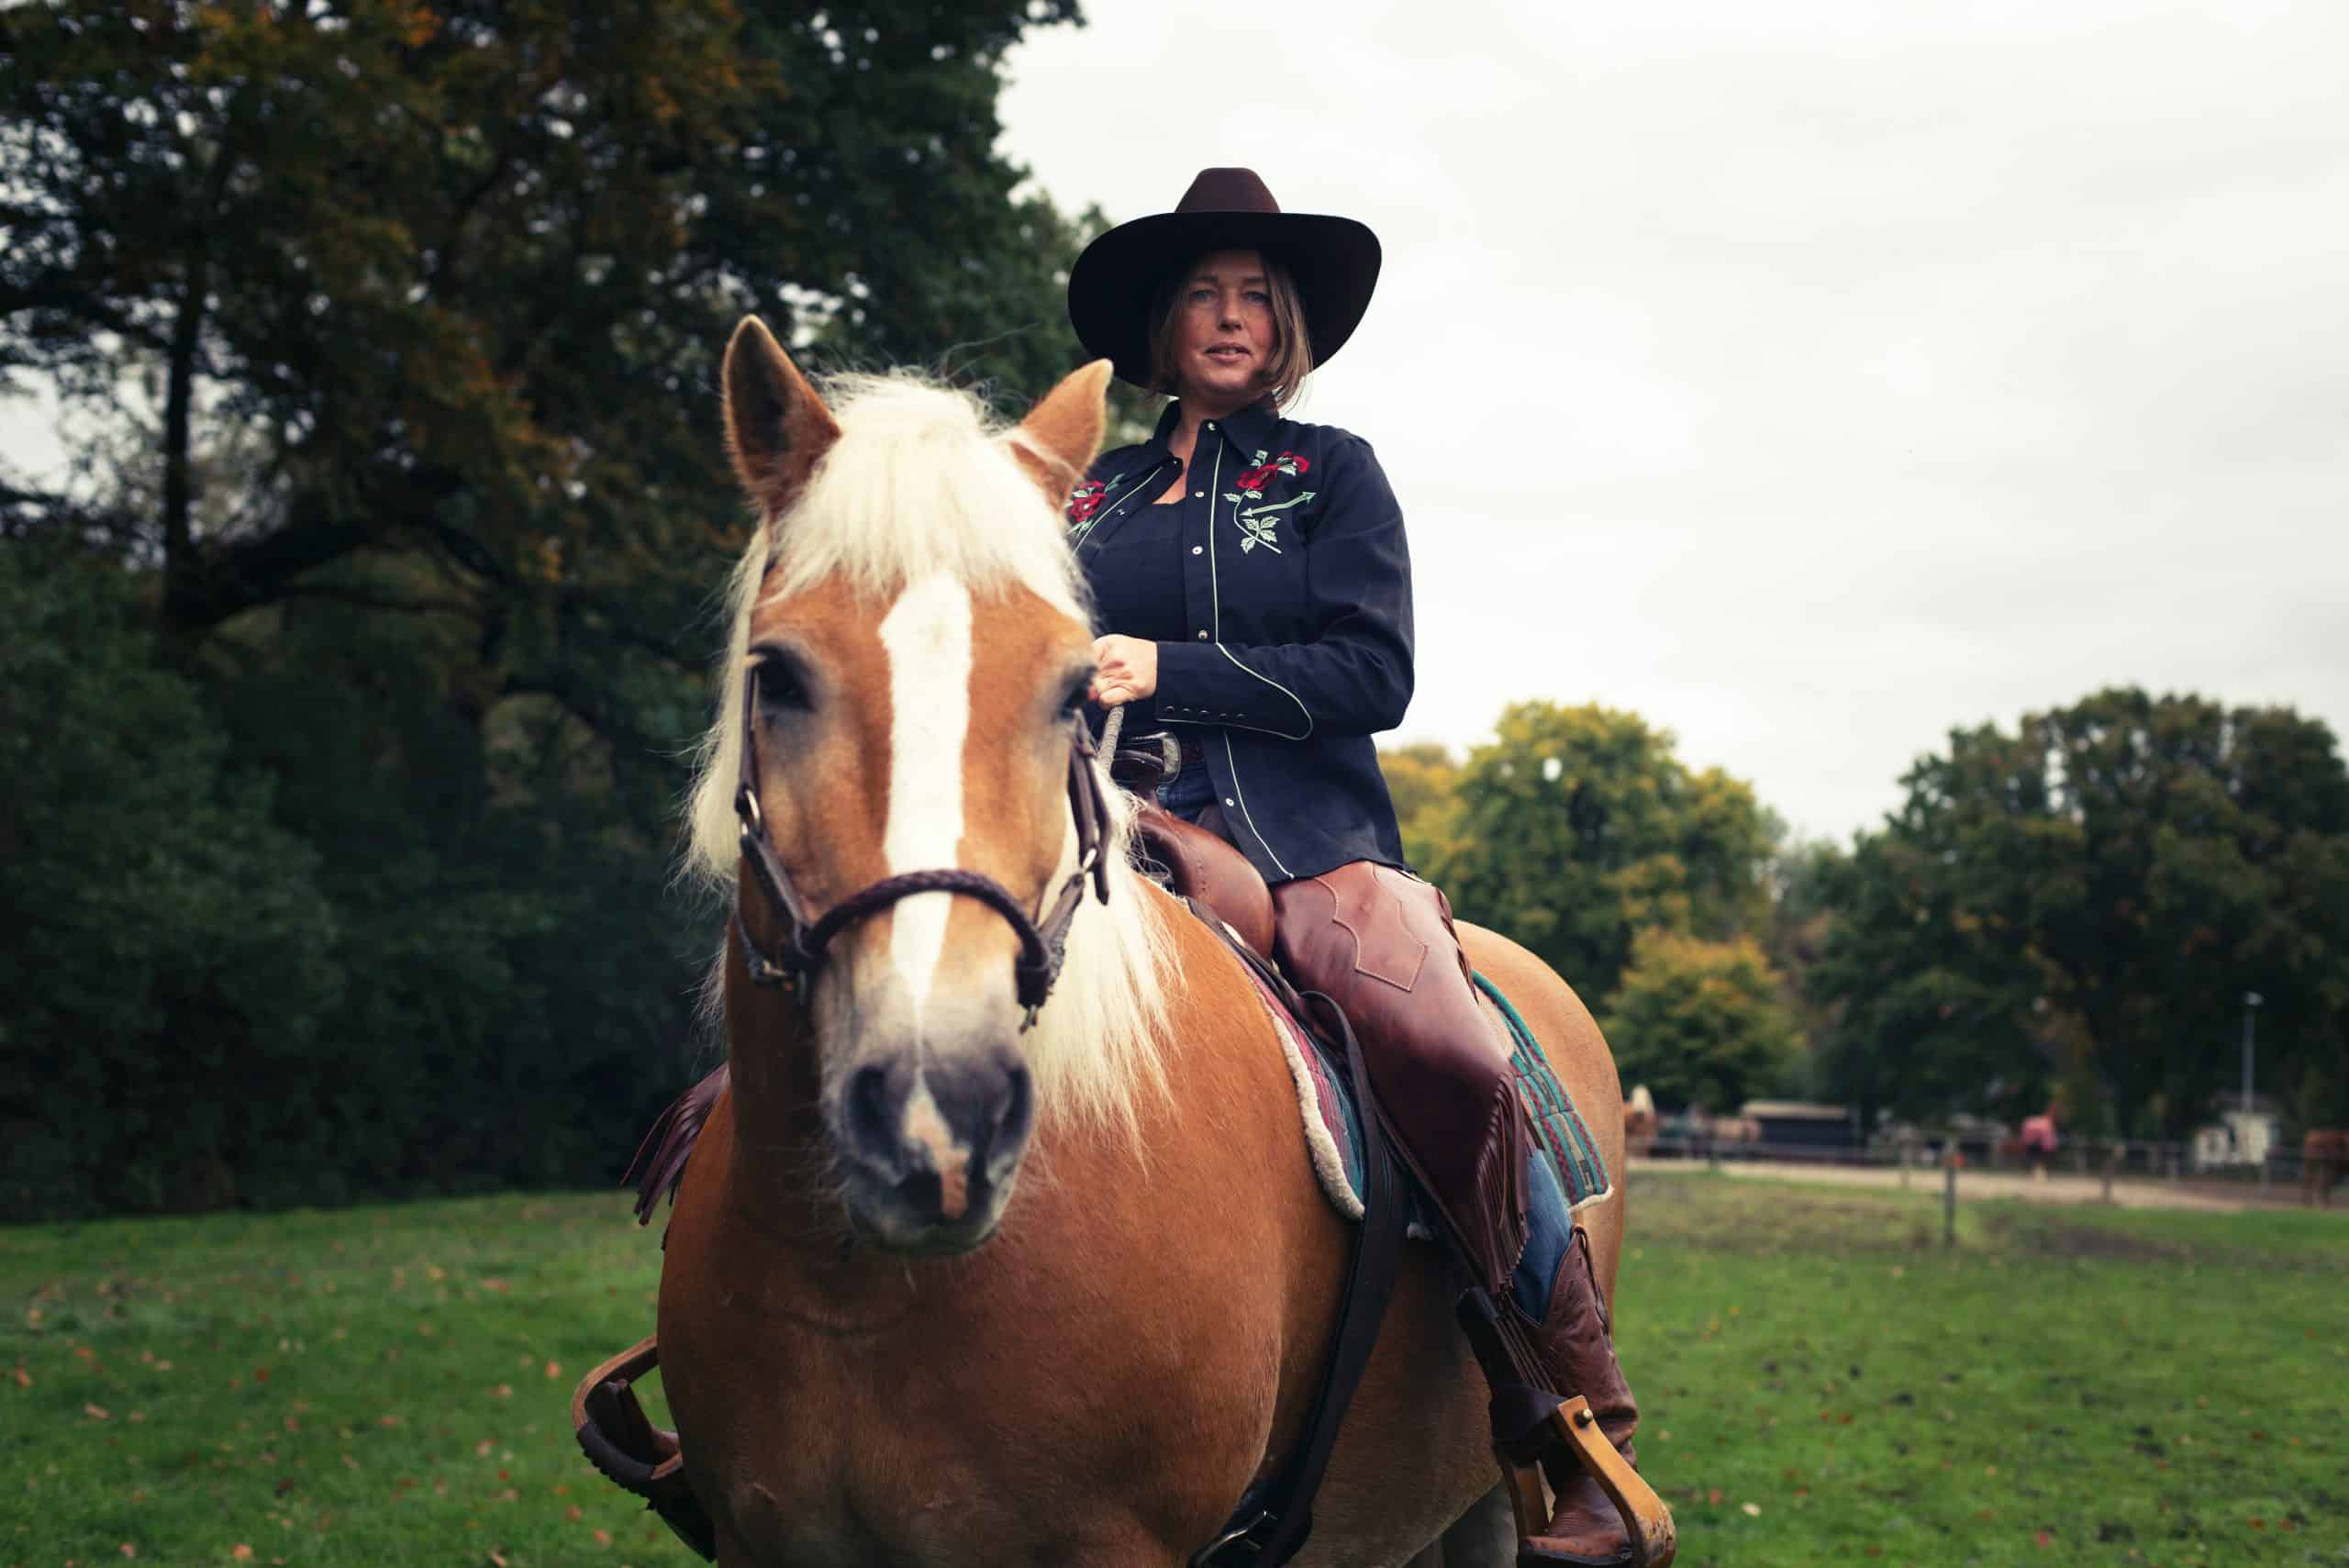 Smiling western style woman horse riding in countryside. trust